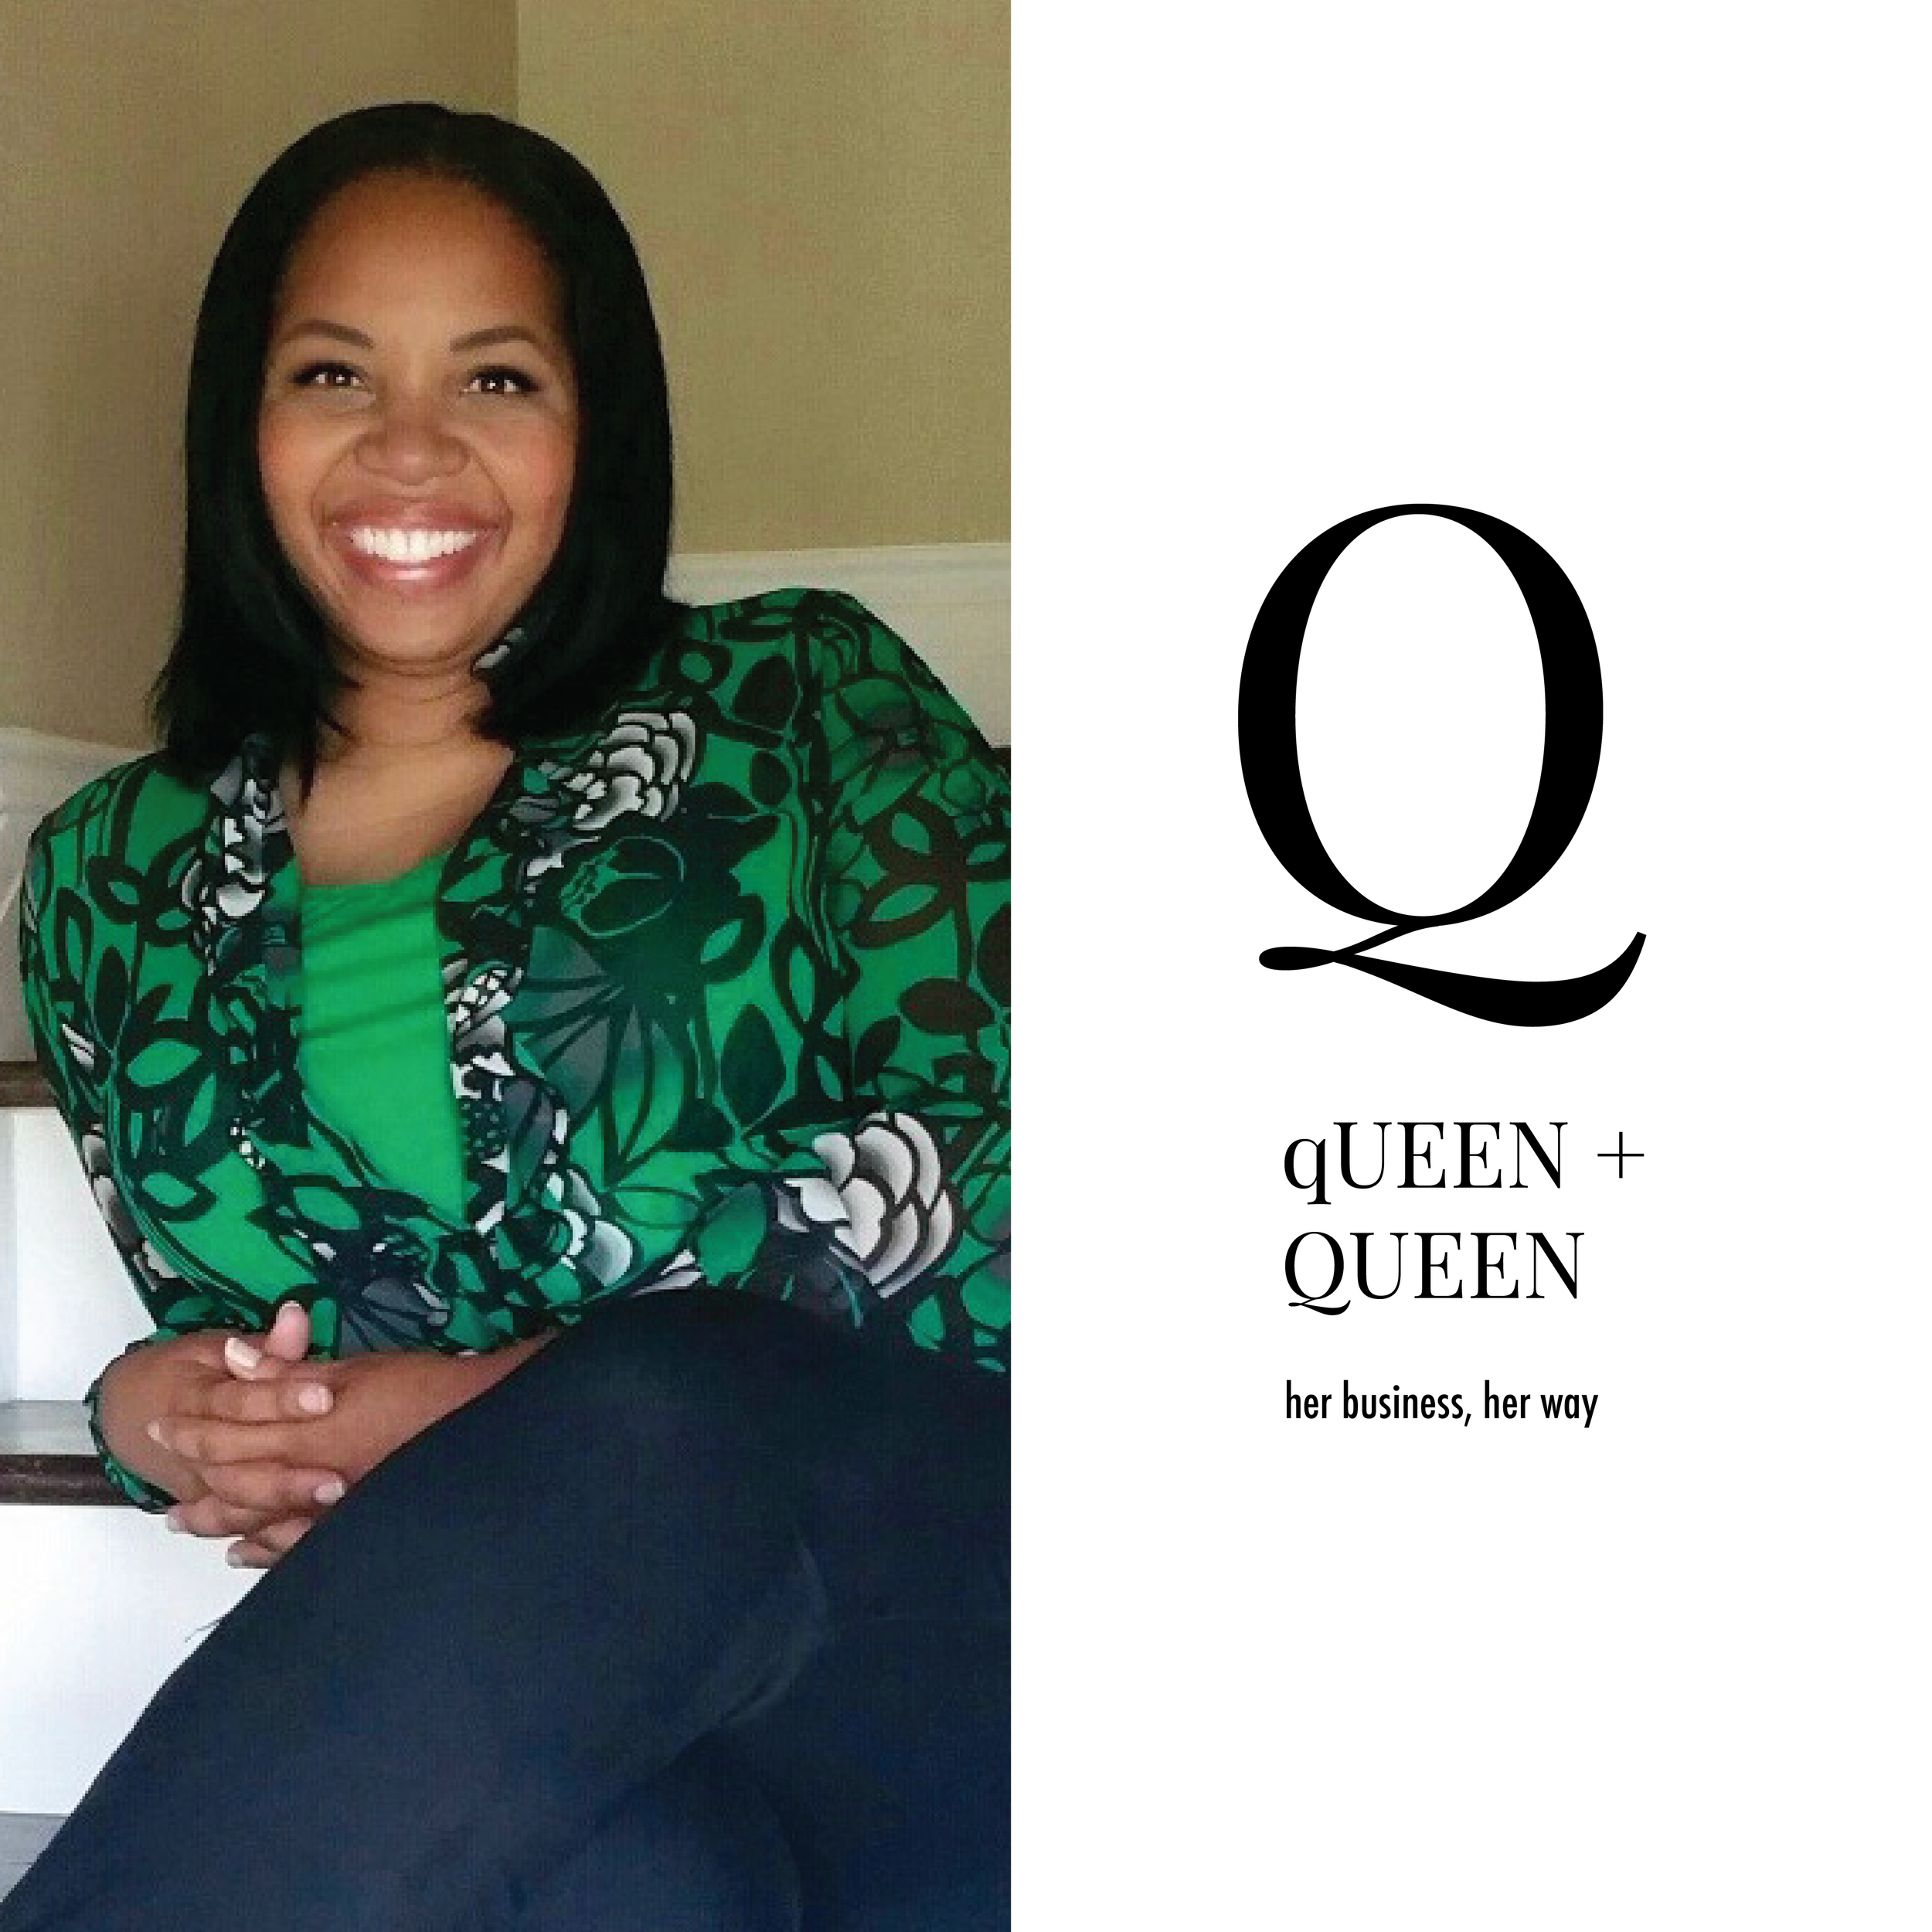 Queen [Recovered]-01 (1).png